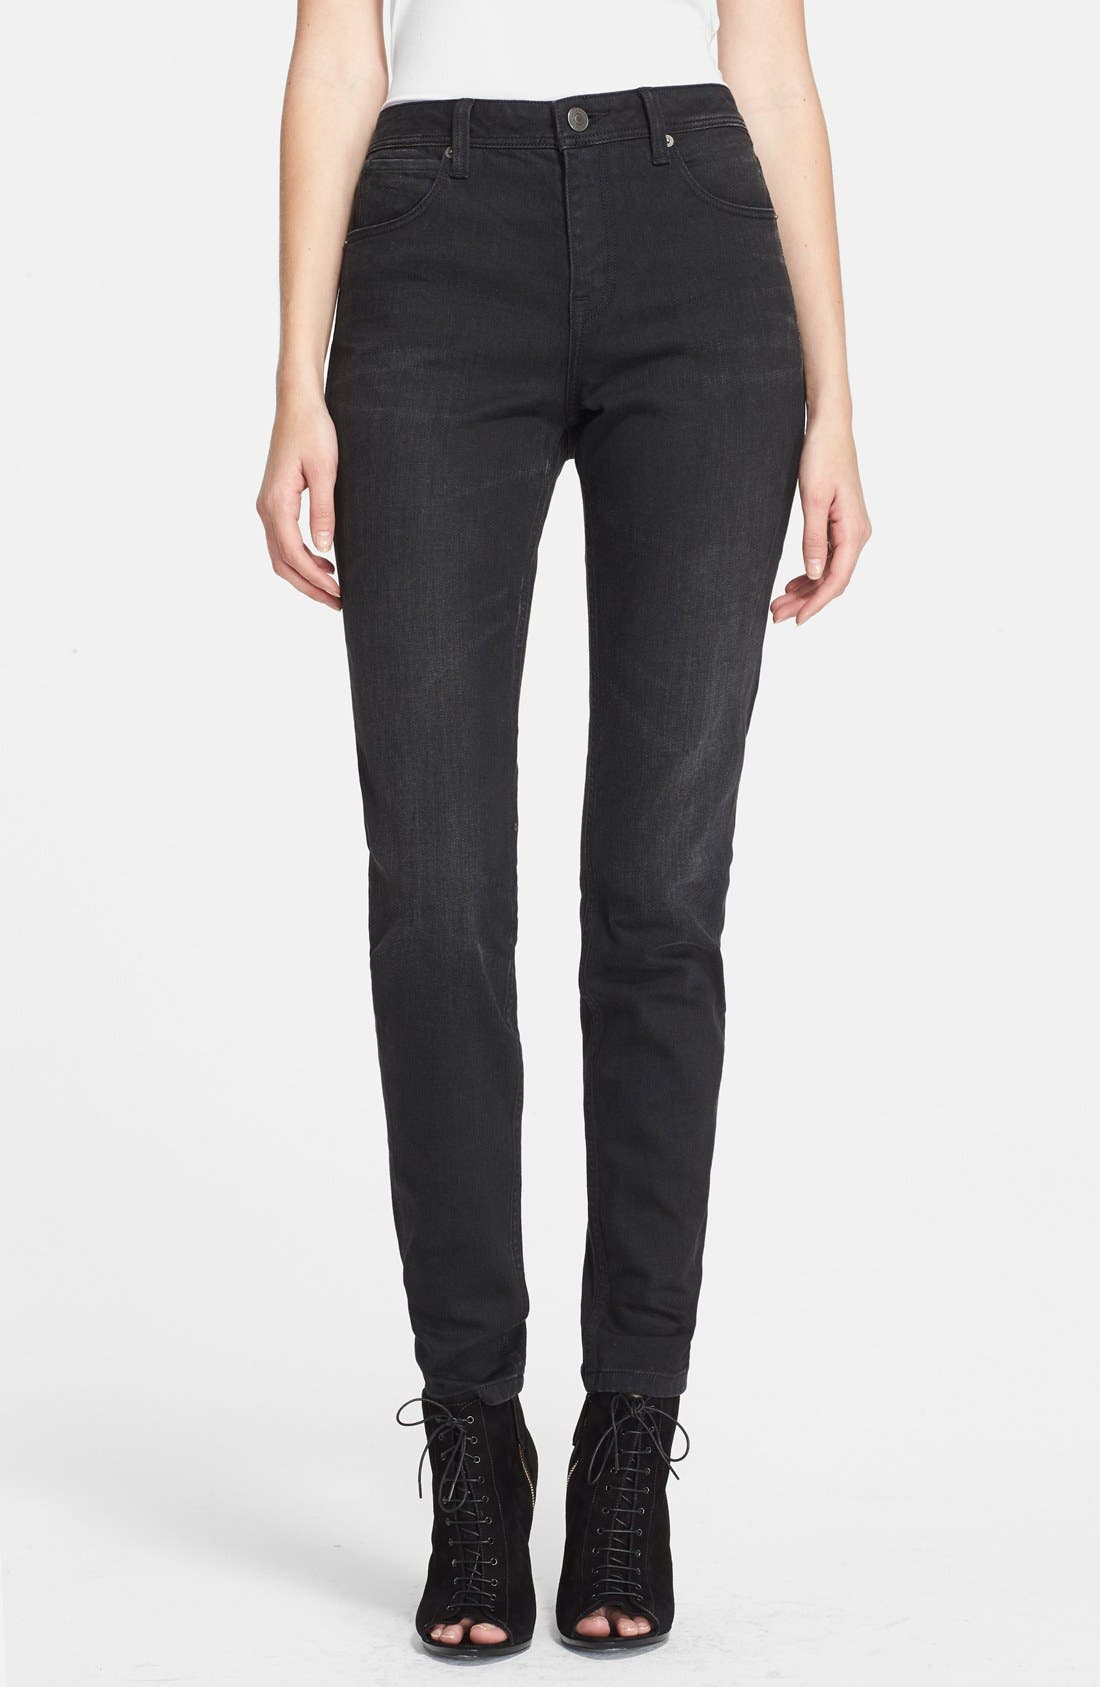 BURBERRY BRIT Skinny Jeans, Main, color, 001